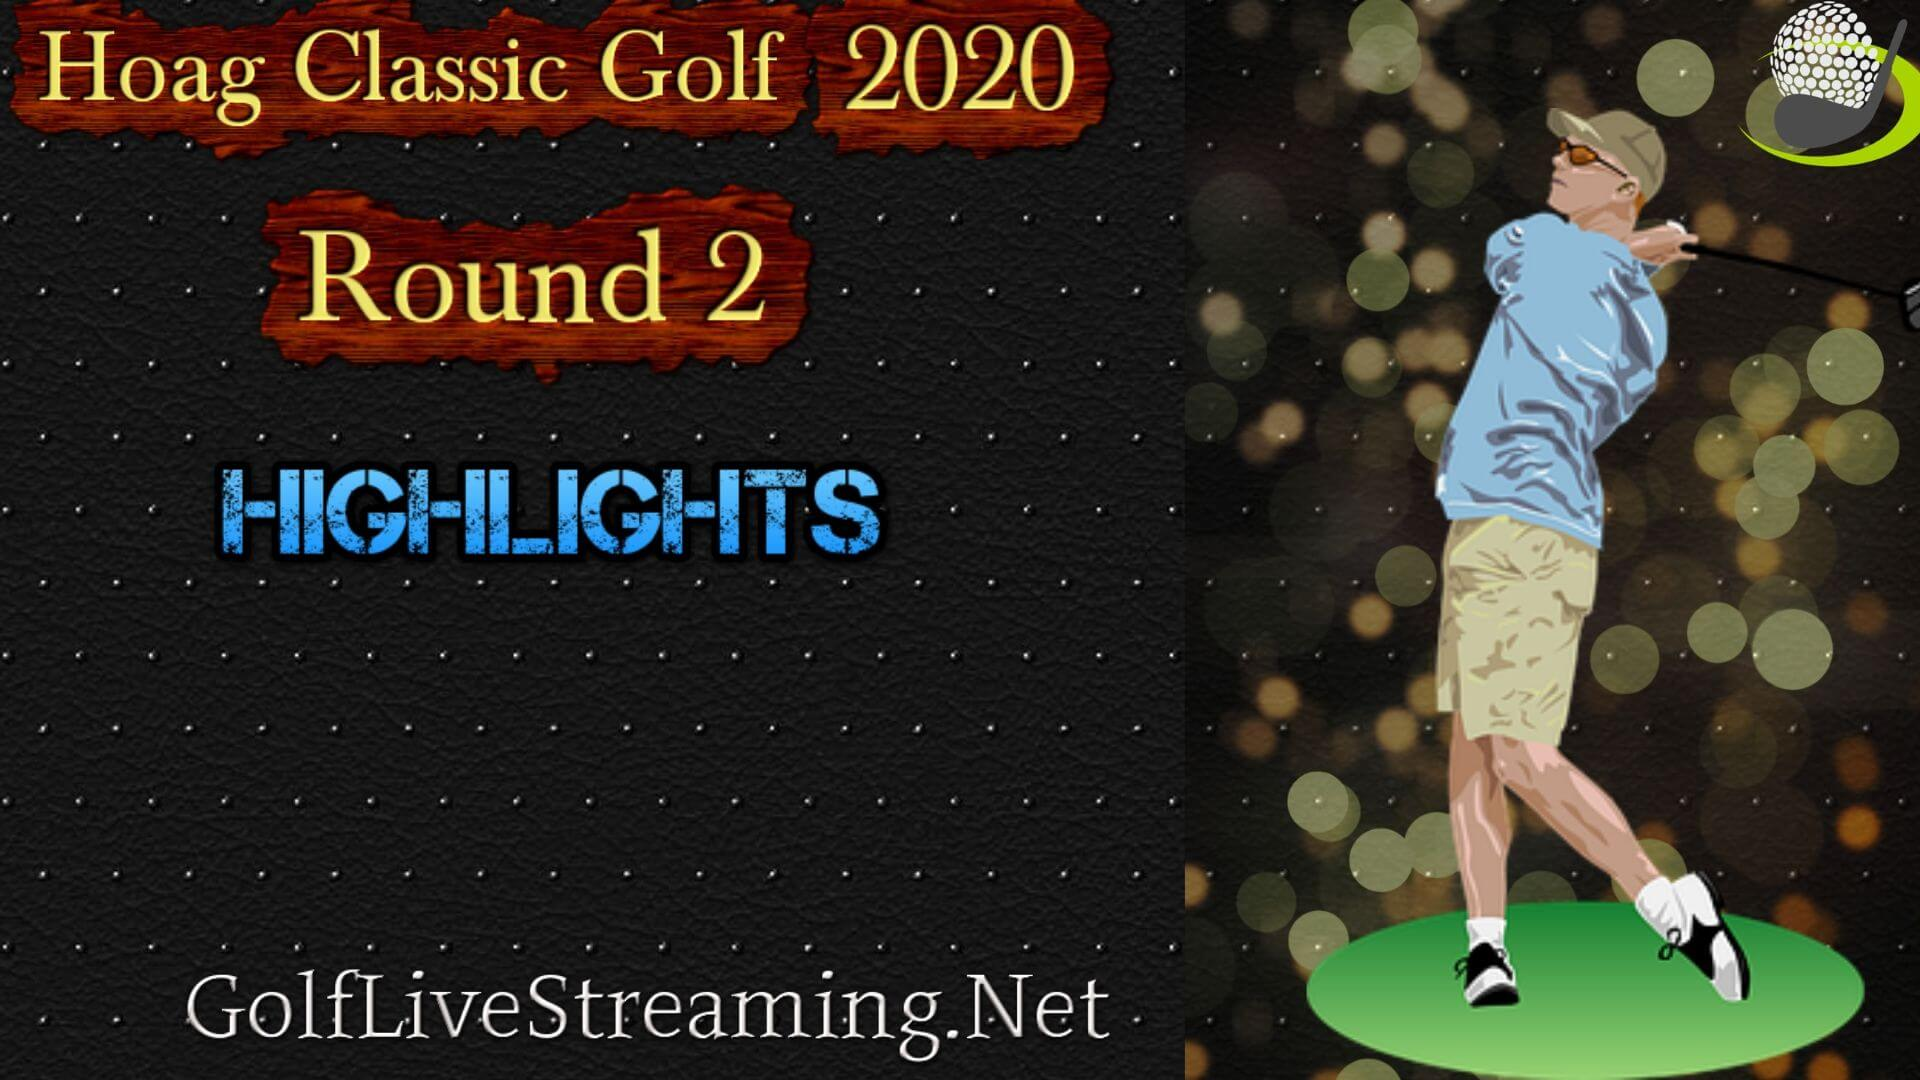 Hoag Classic Golf Rd 2 Highlights 2020